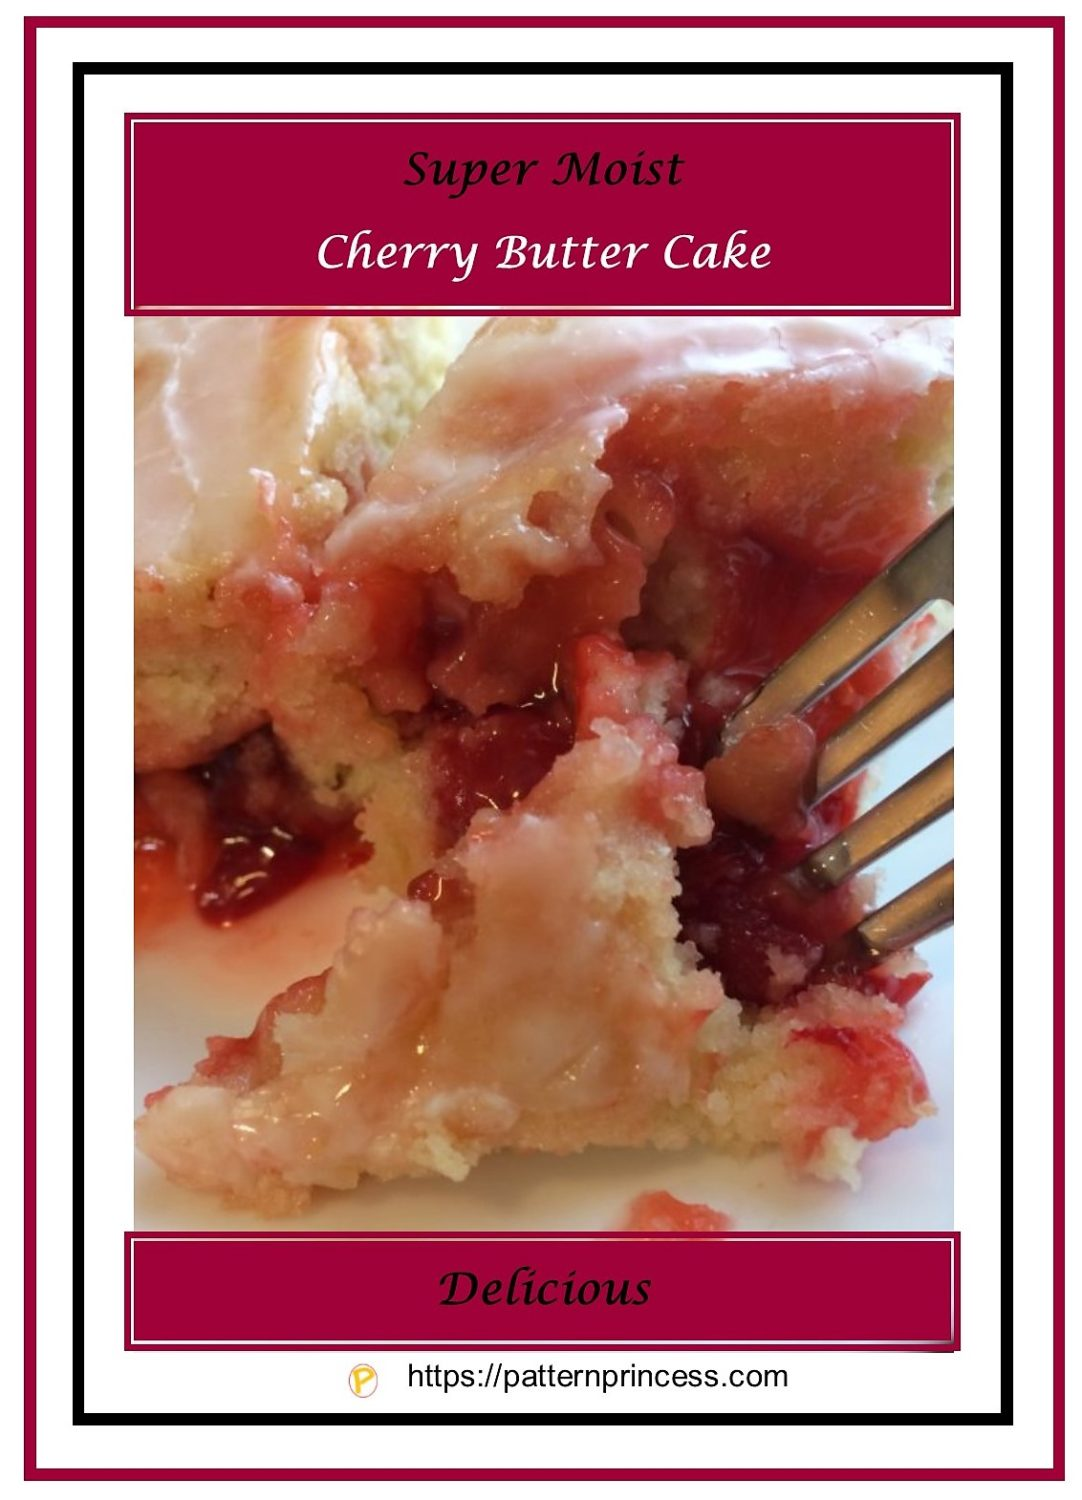 Super Moist Cherry Butter Cake 3